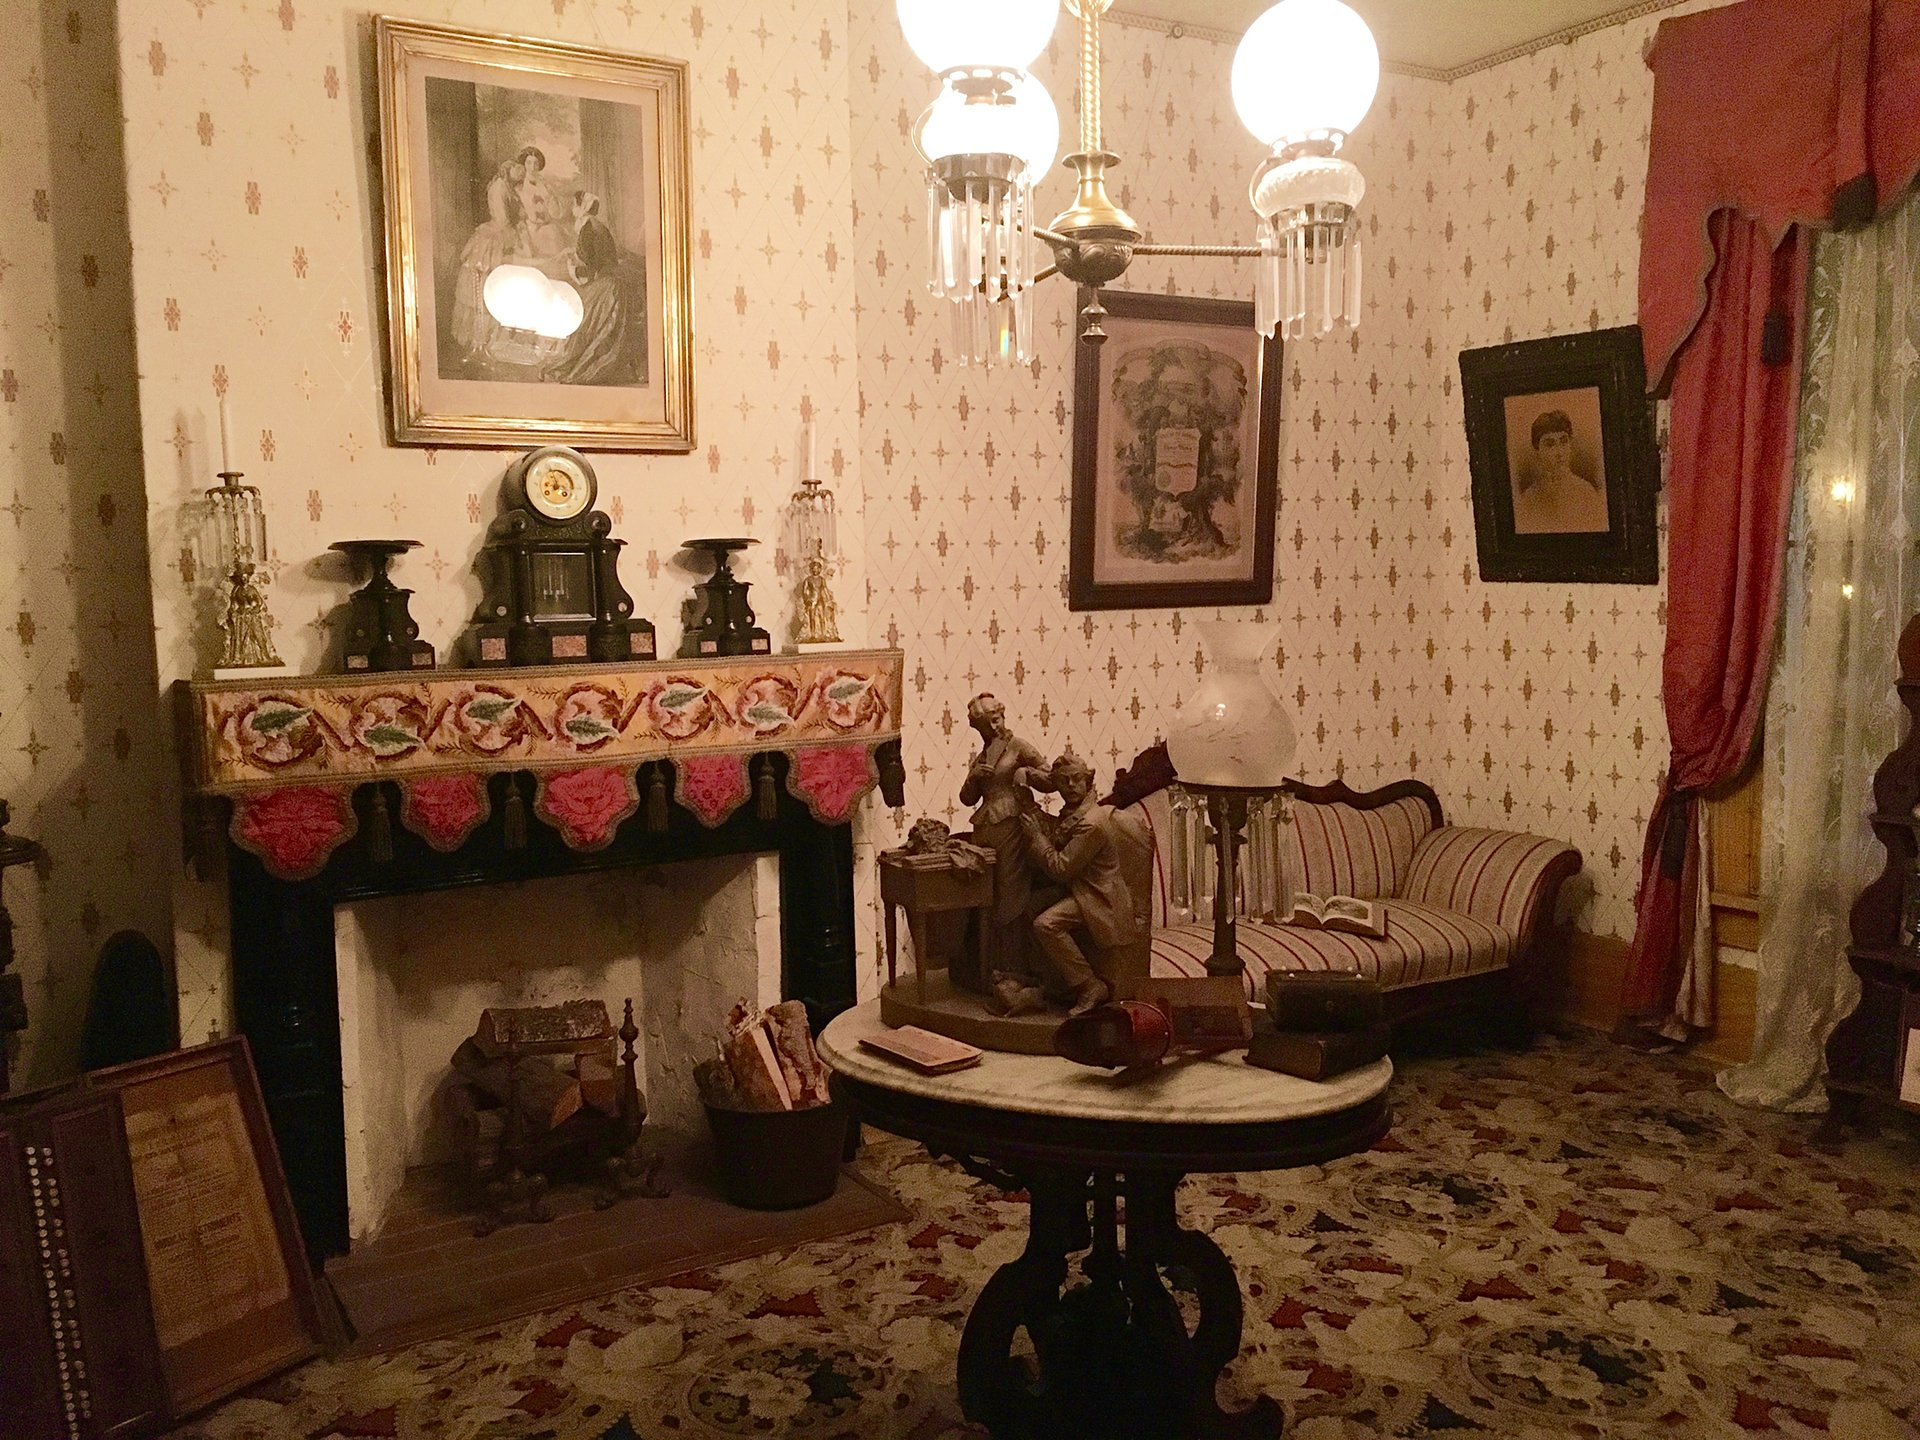 The Whaley House Haunted Tour Is Definitely Spooky Like This Hideous Living Room Decor For